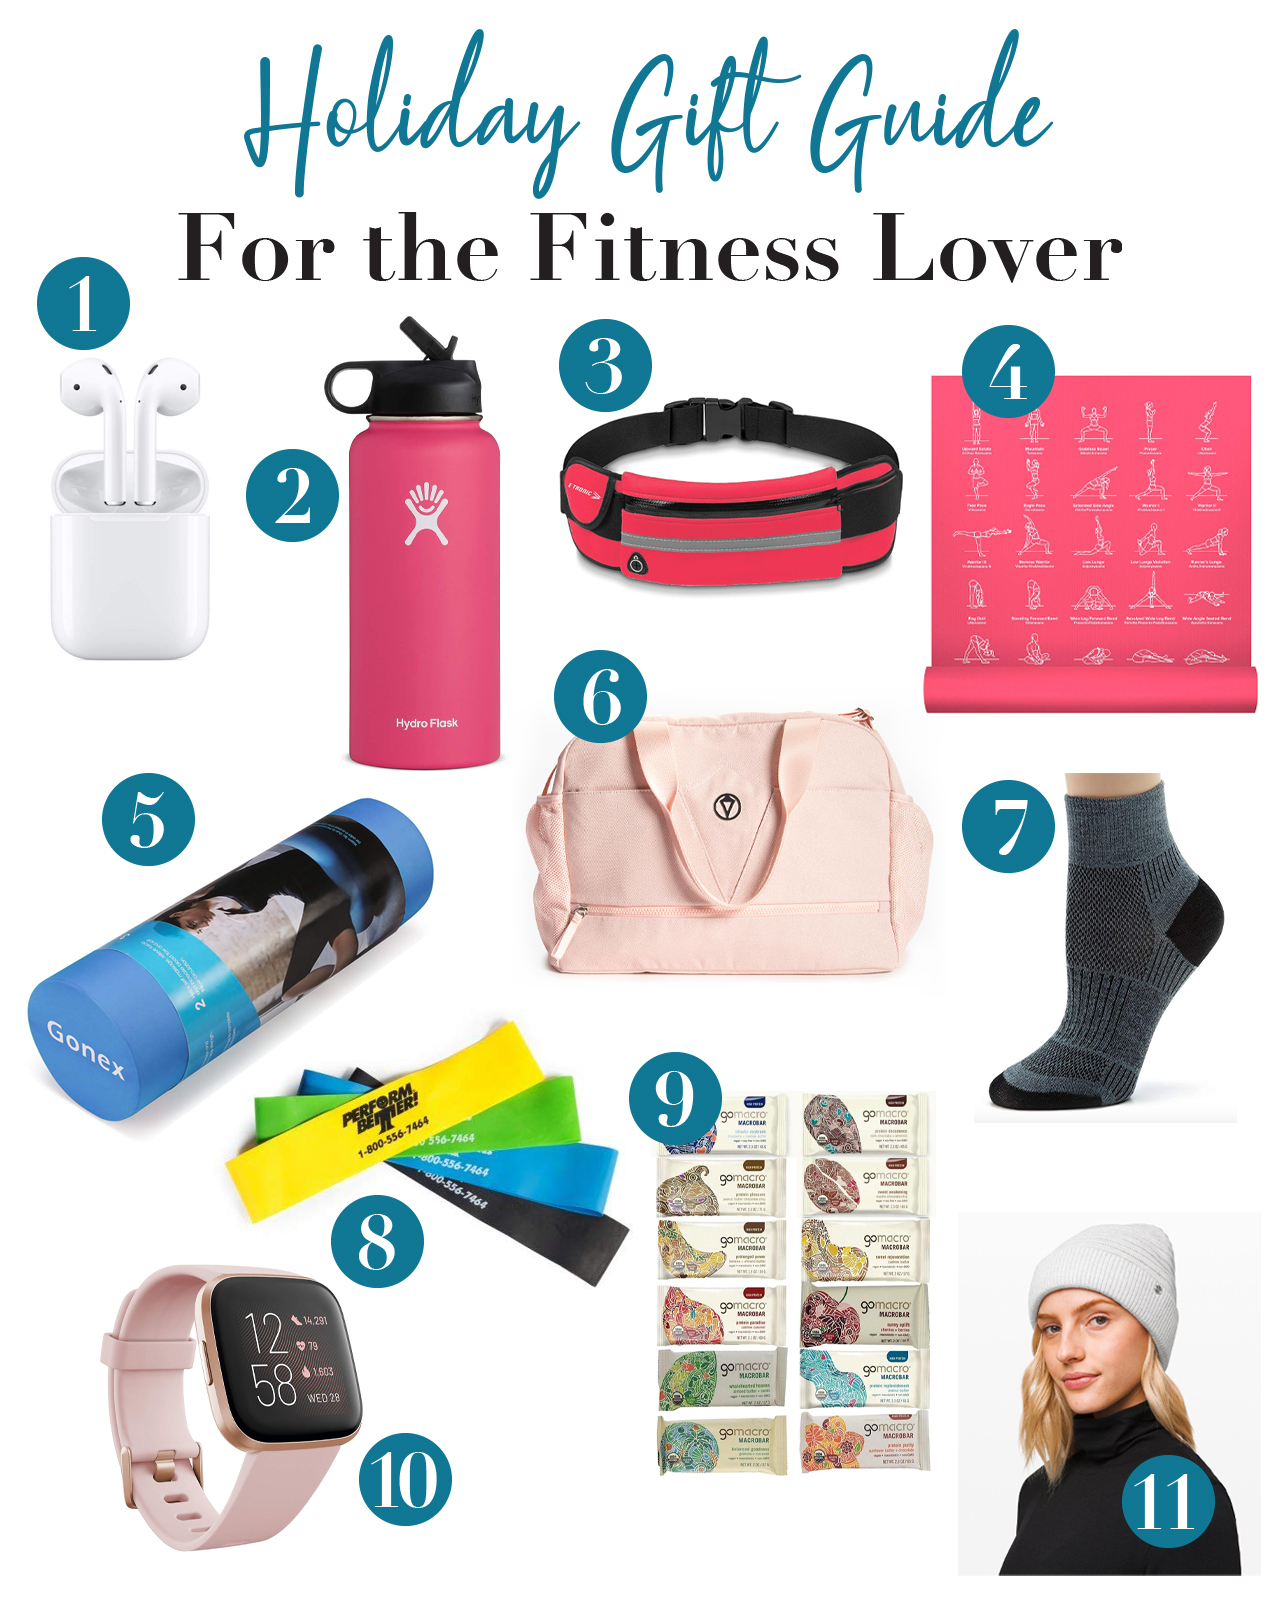 2019 Holiday Gift Guide for the Fitness Lover